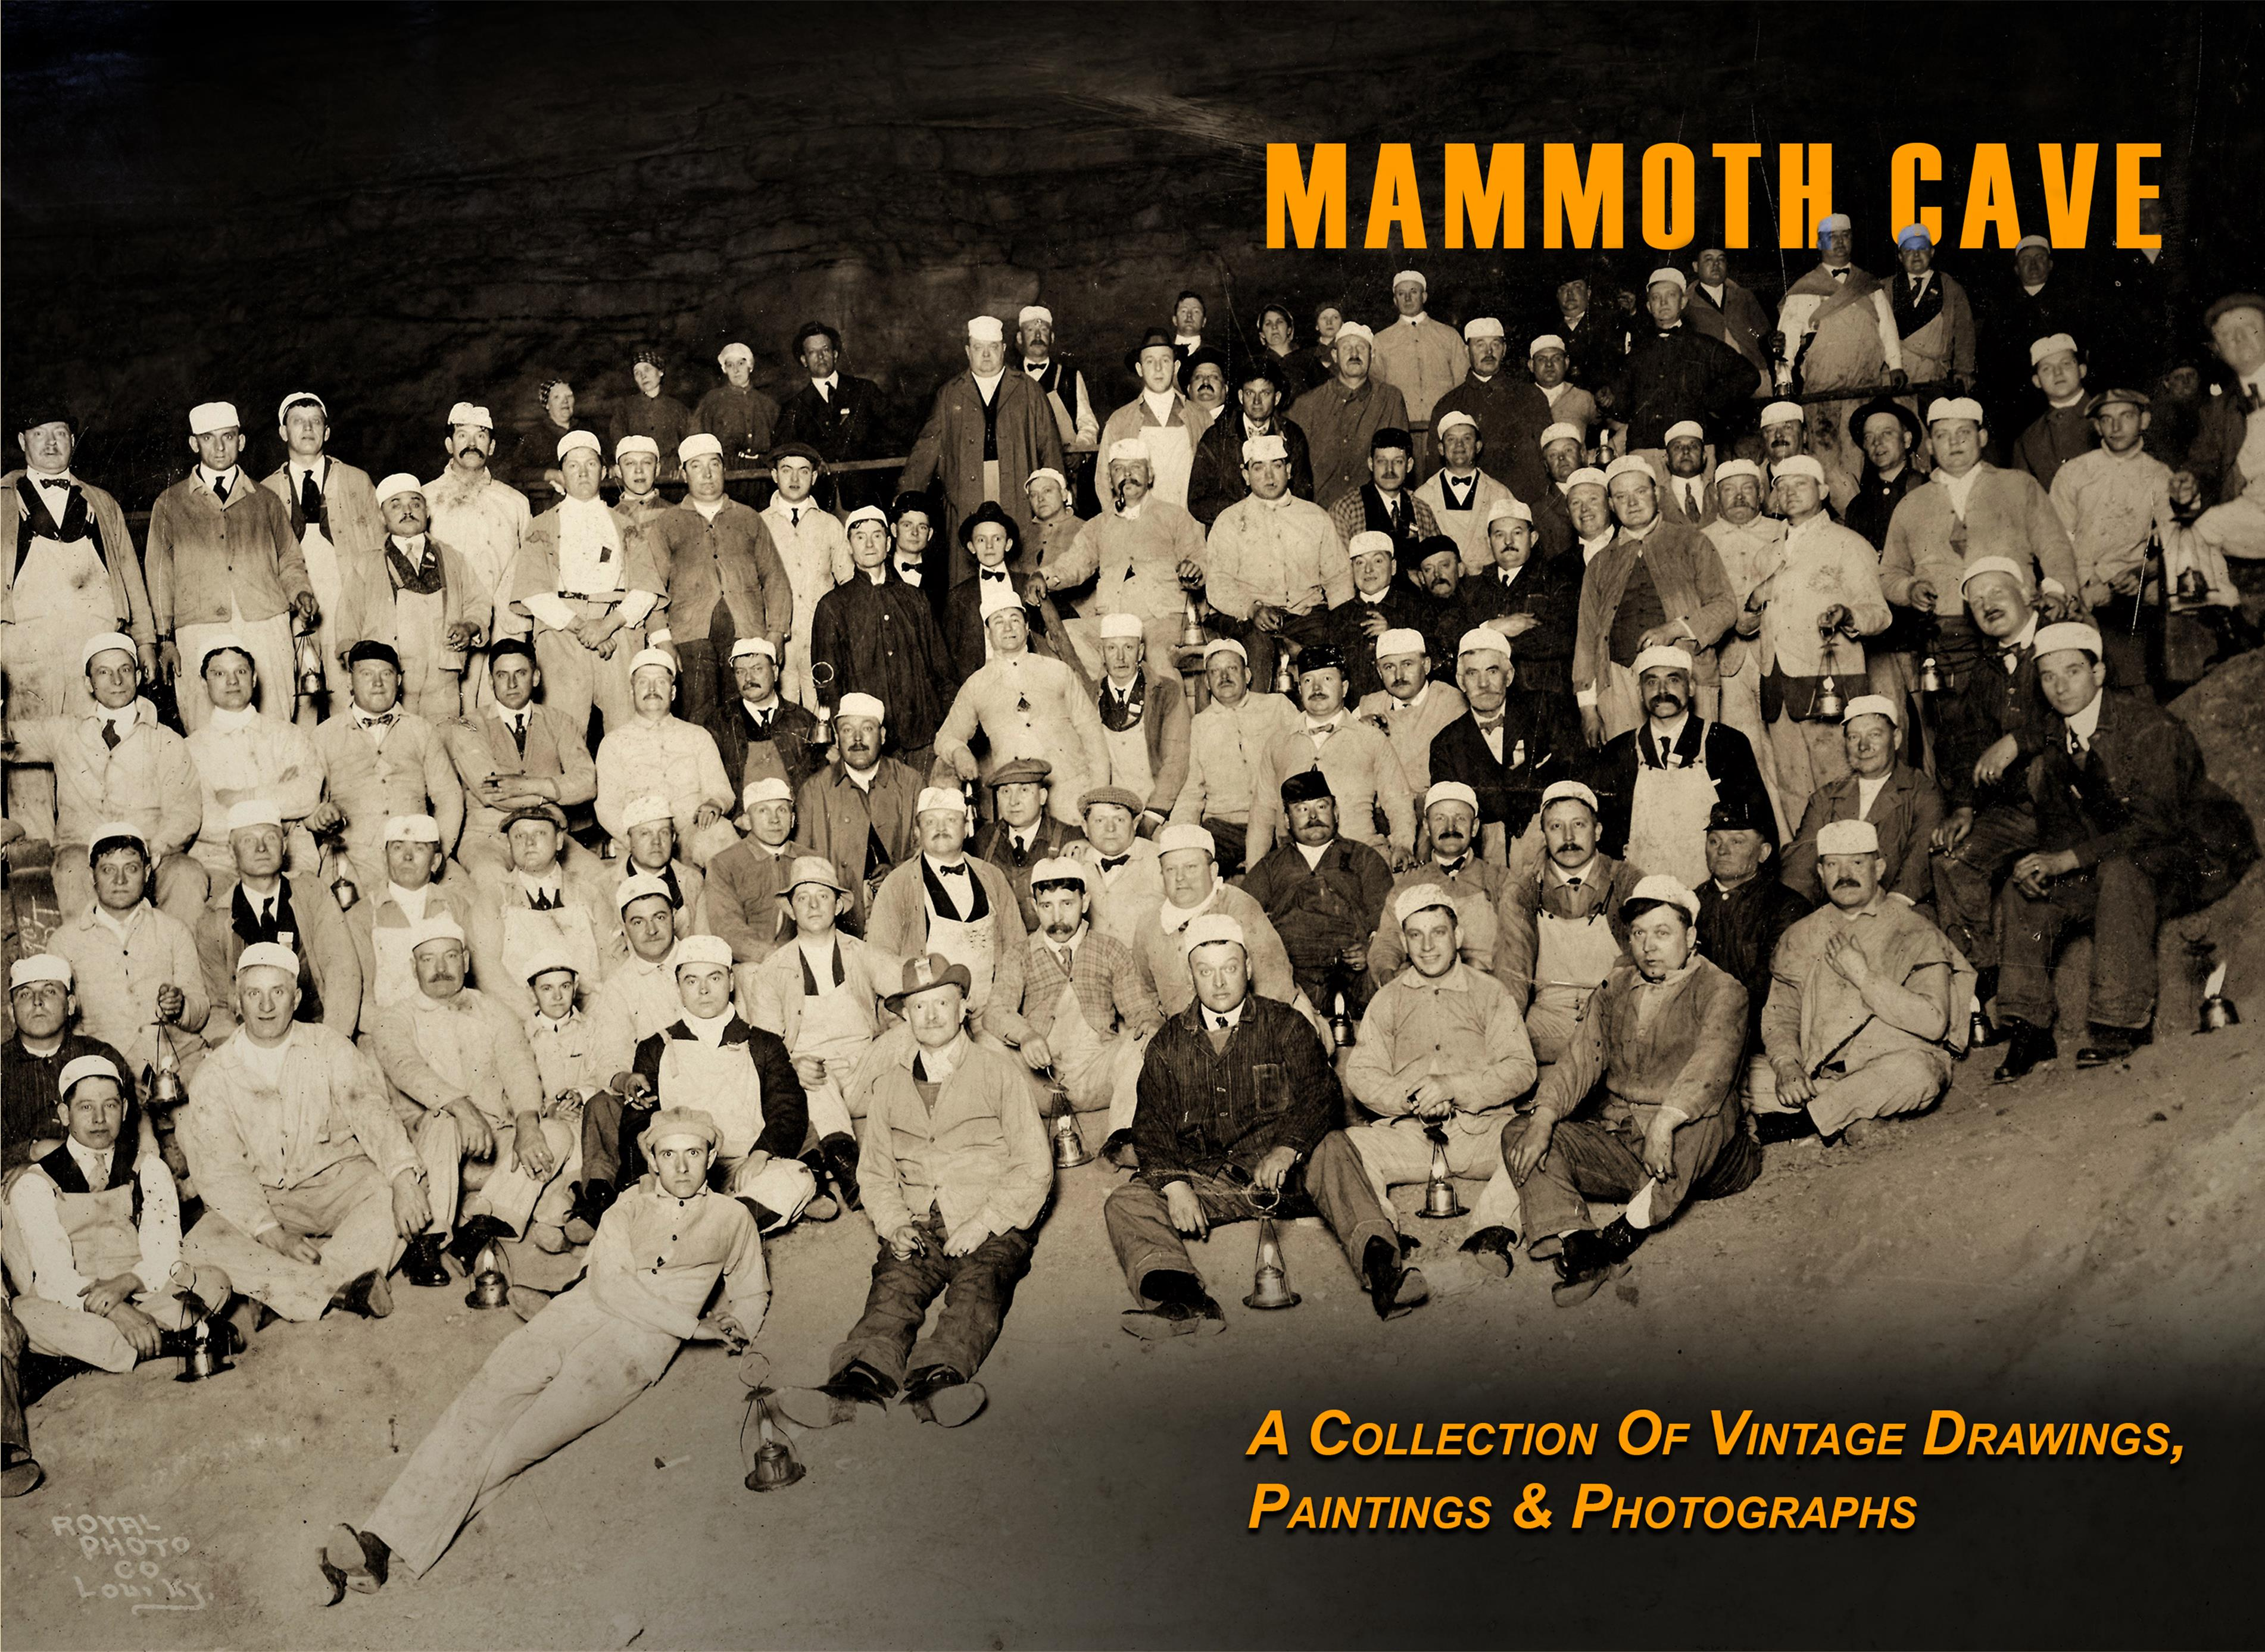 Mammoth Cave: A Collection of Vintage Drawings, Paintings and Photographs cover image